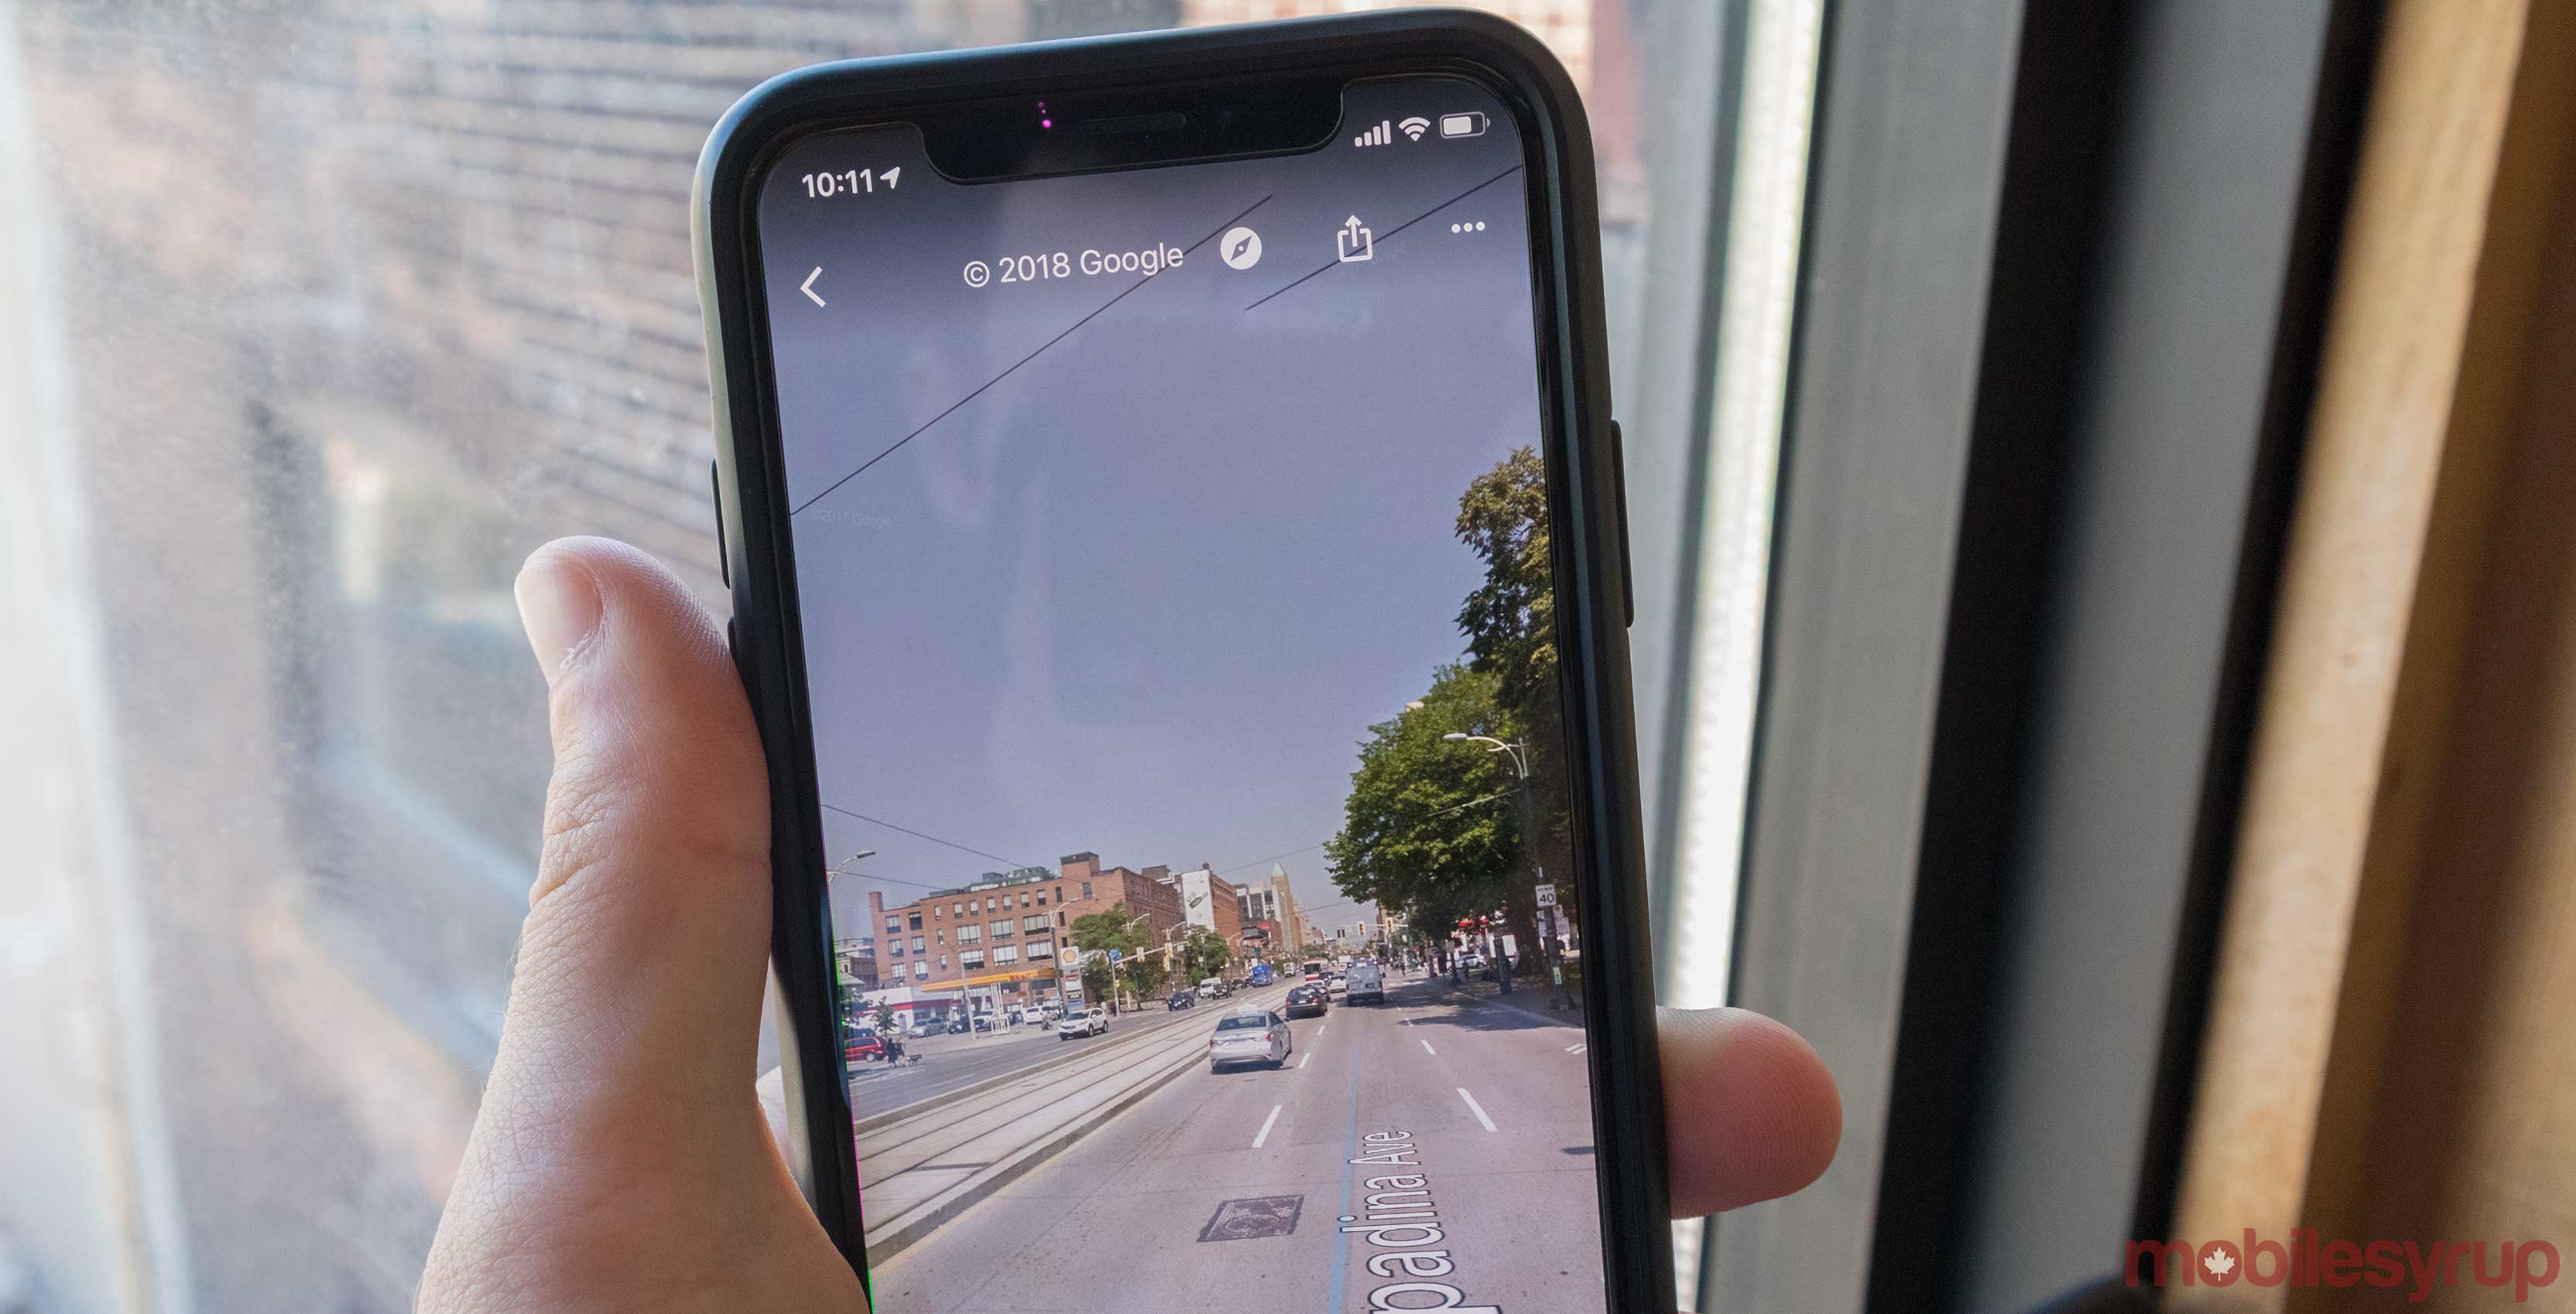 Google Maps' Street View on iOS now supports the iPhone X's